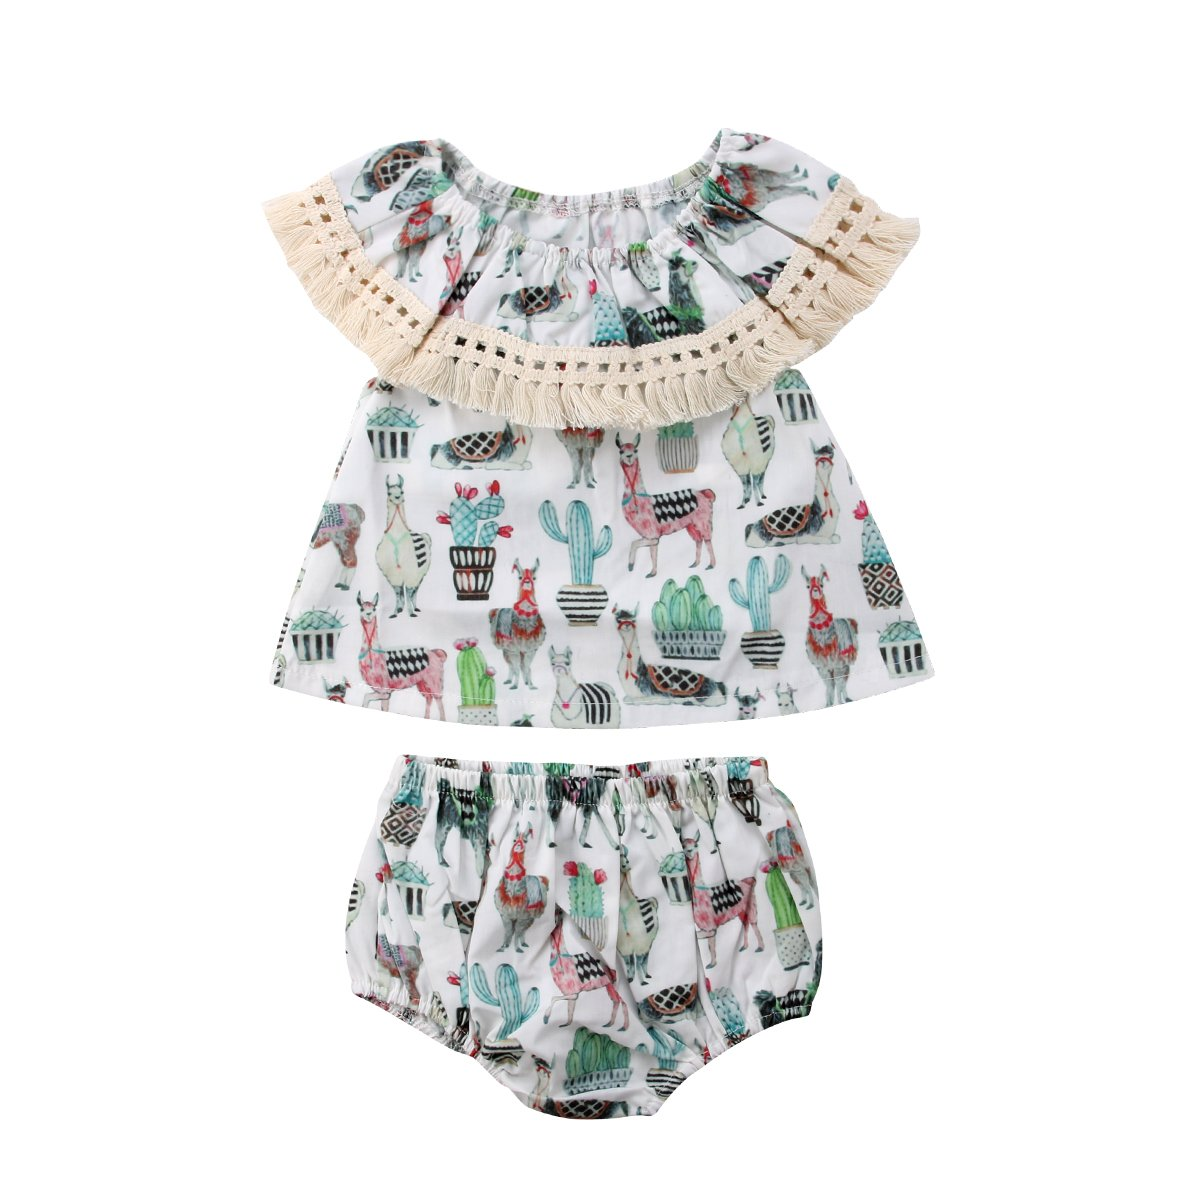 Infant Toddler Baby Girls Summer Clothes Set Animal Print Tassle Top Dress Bloomers Playwear Outfits